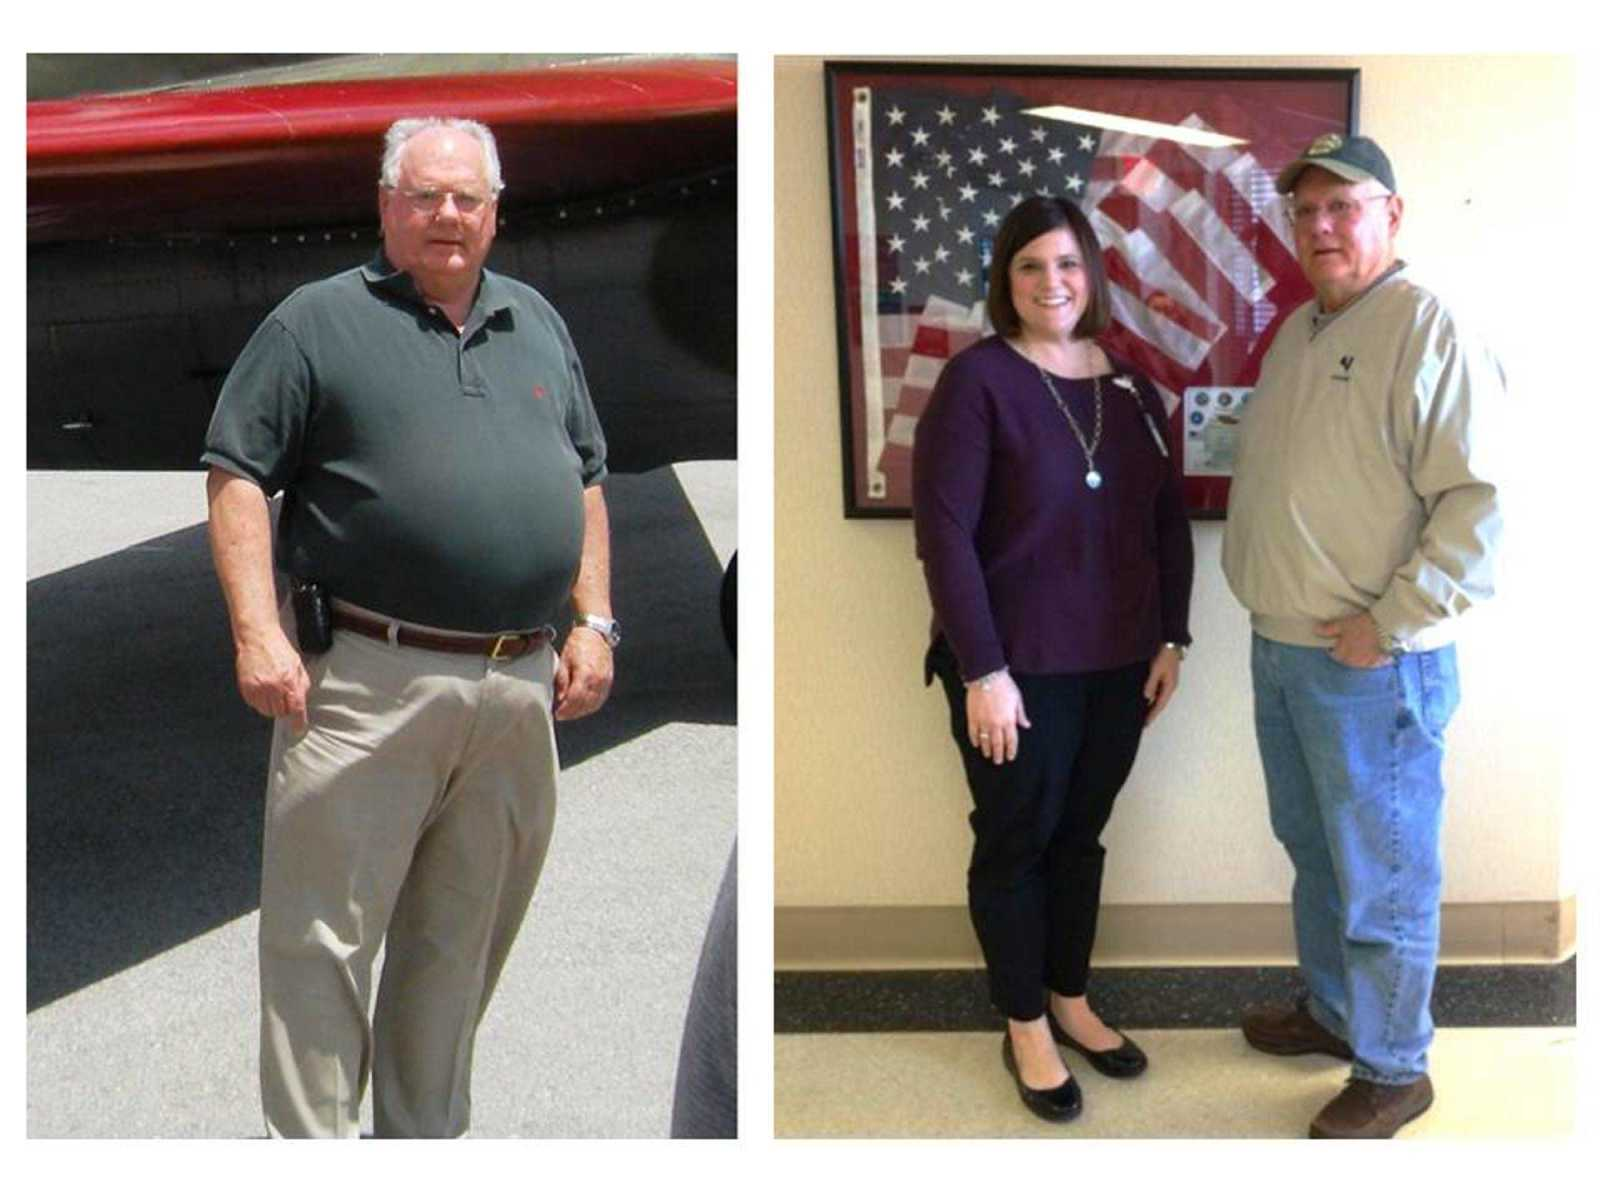 Poplar Bluff veteran loses 65 pounds through diet and exercise